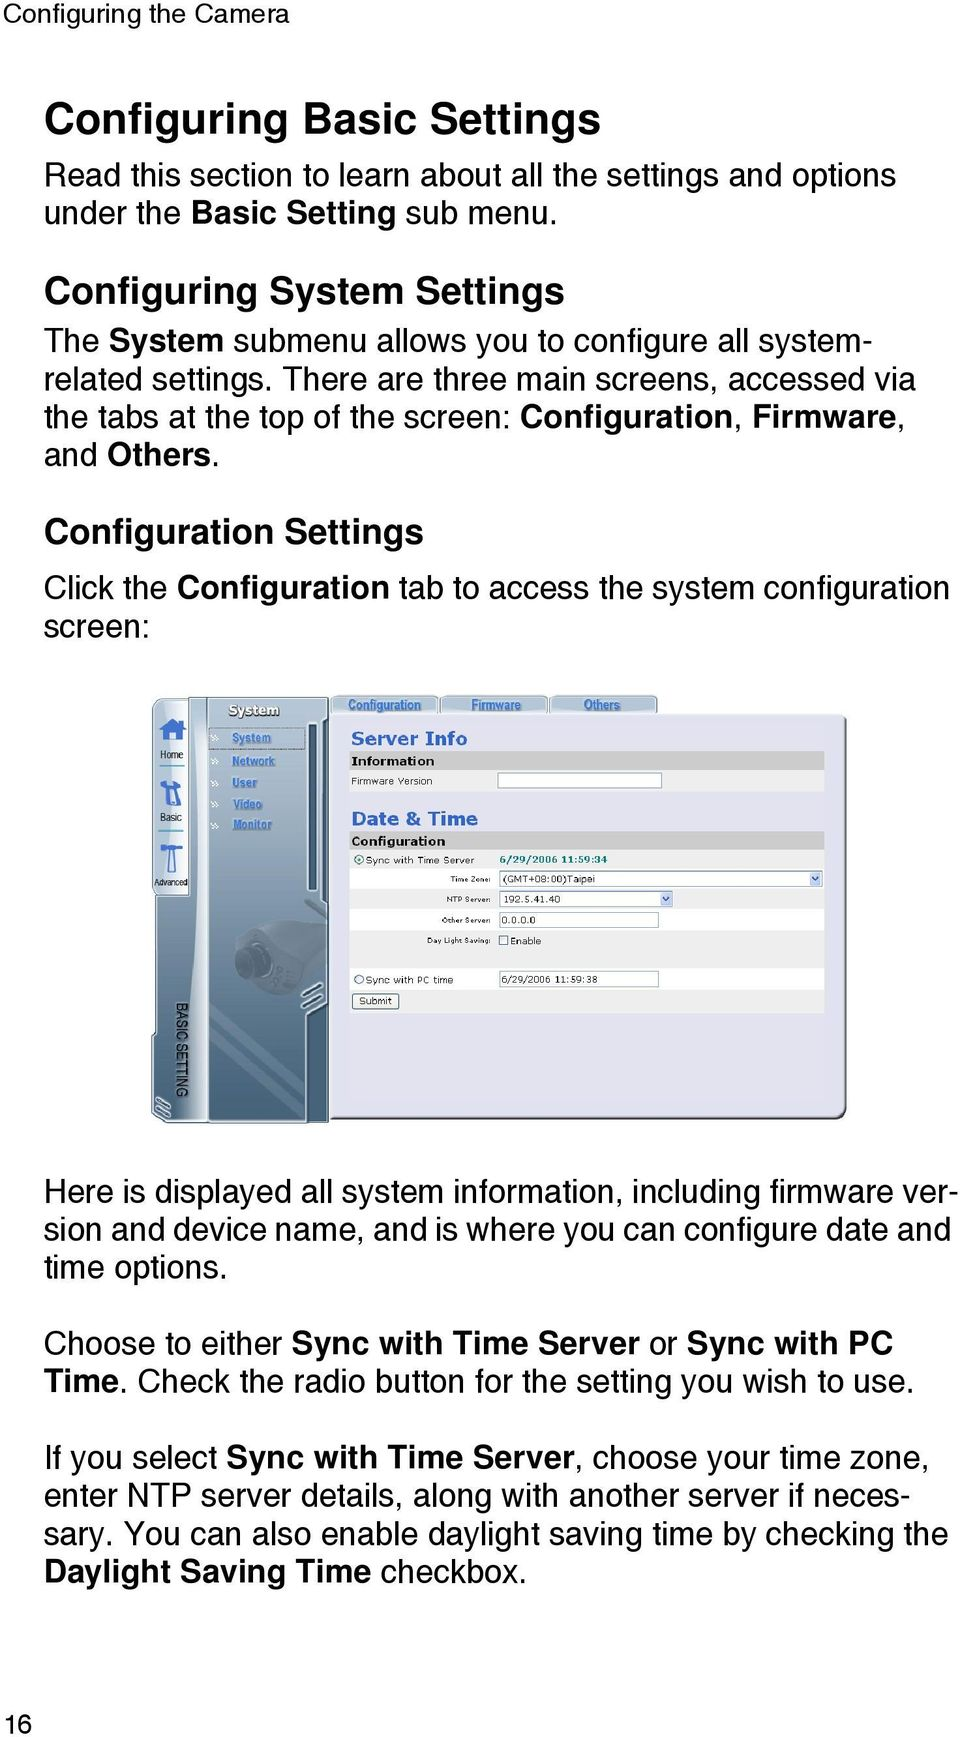 There are three main screens, accessed via the tabs at the top of the screen: Configuration, Firmware, and Others.